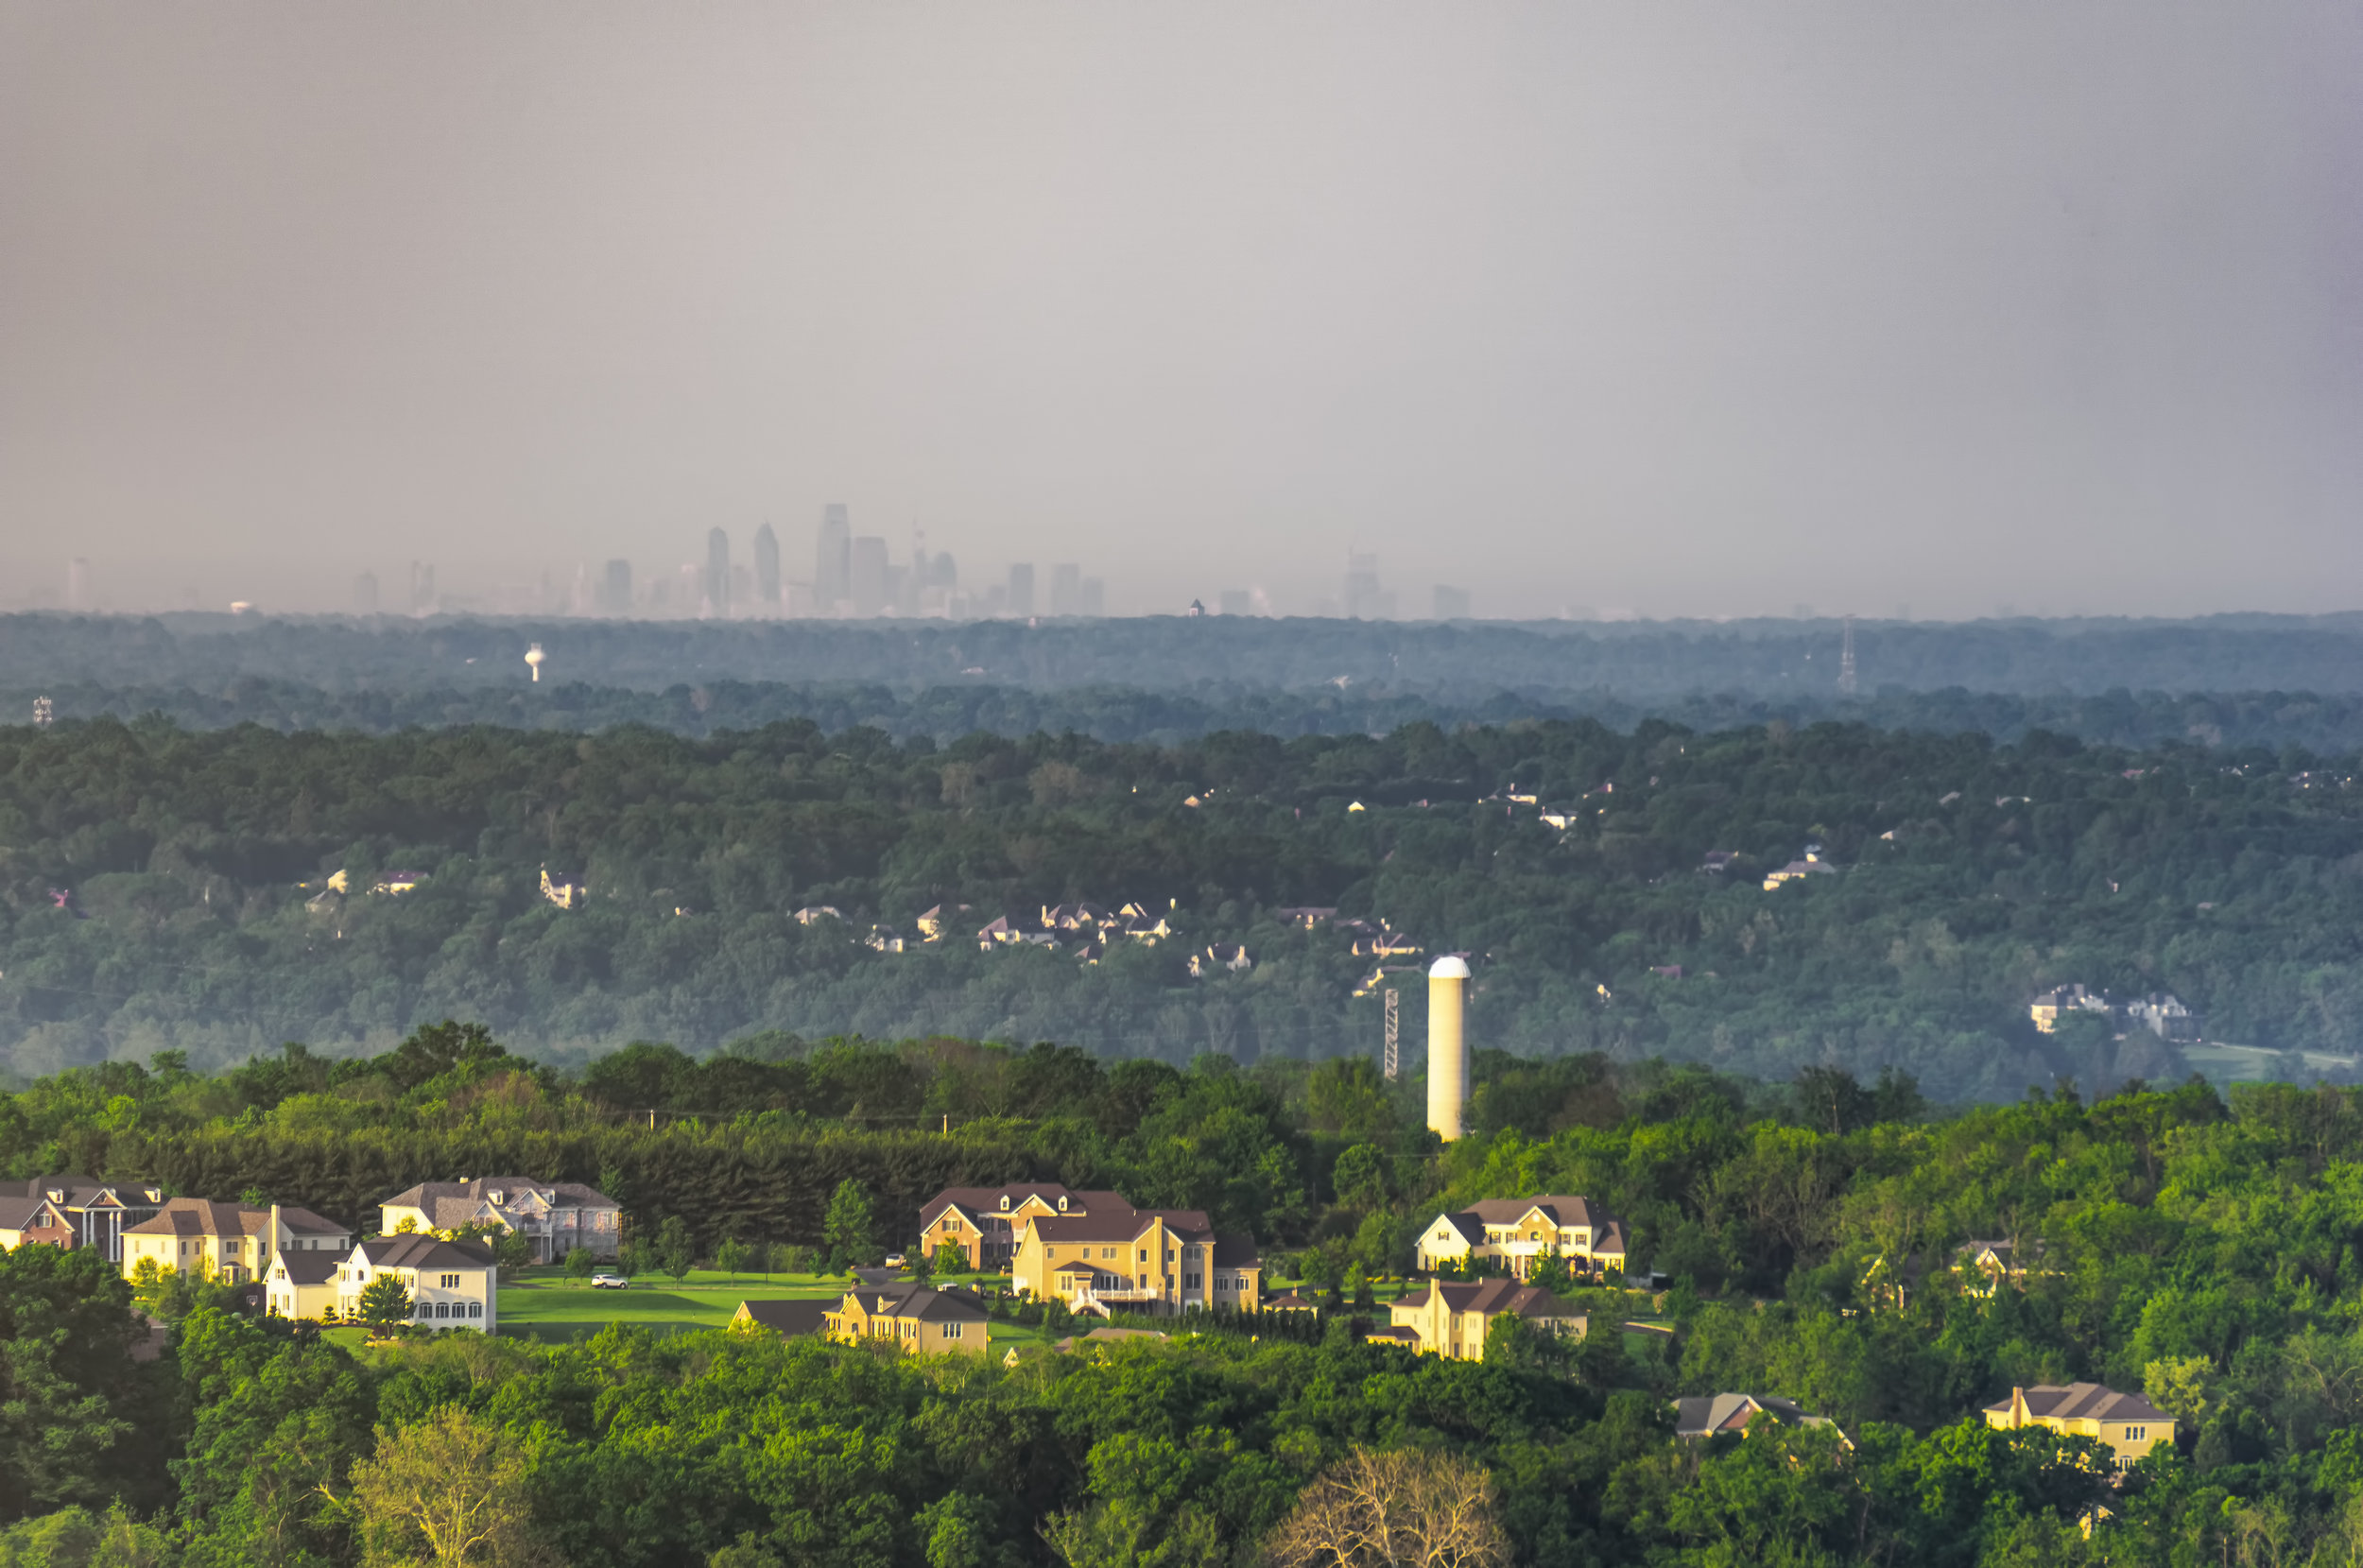 The Philadelphia Skyline lying beyond the rolling hills of Bucks County.